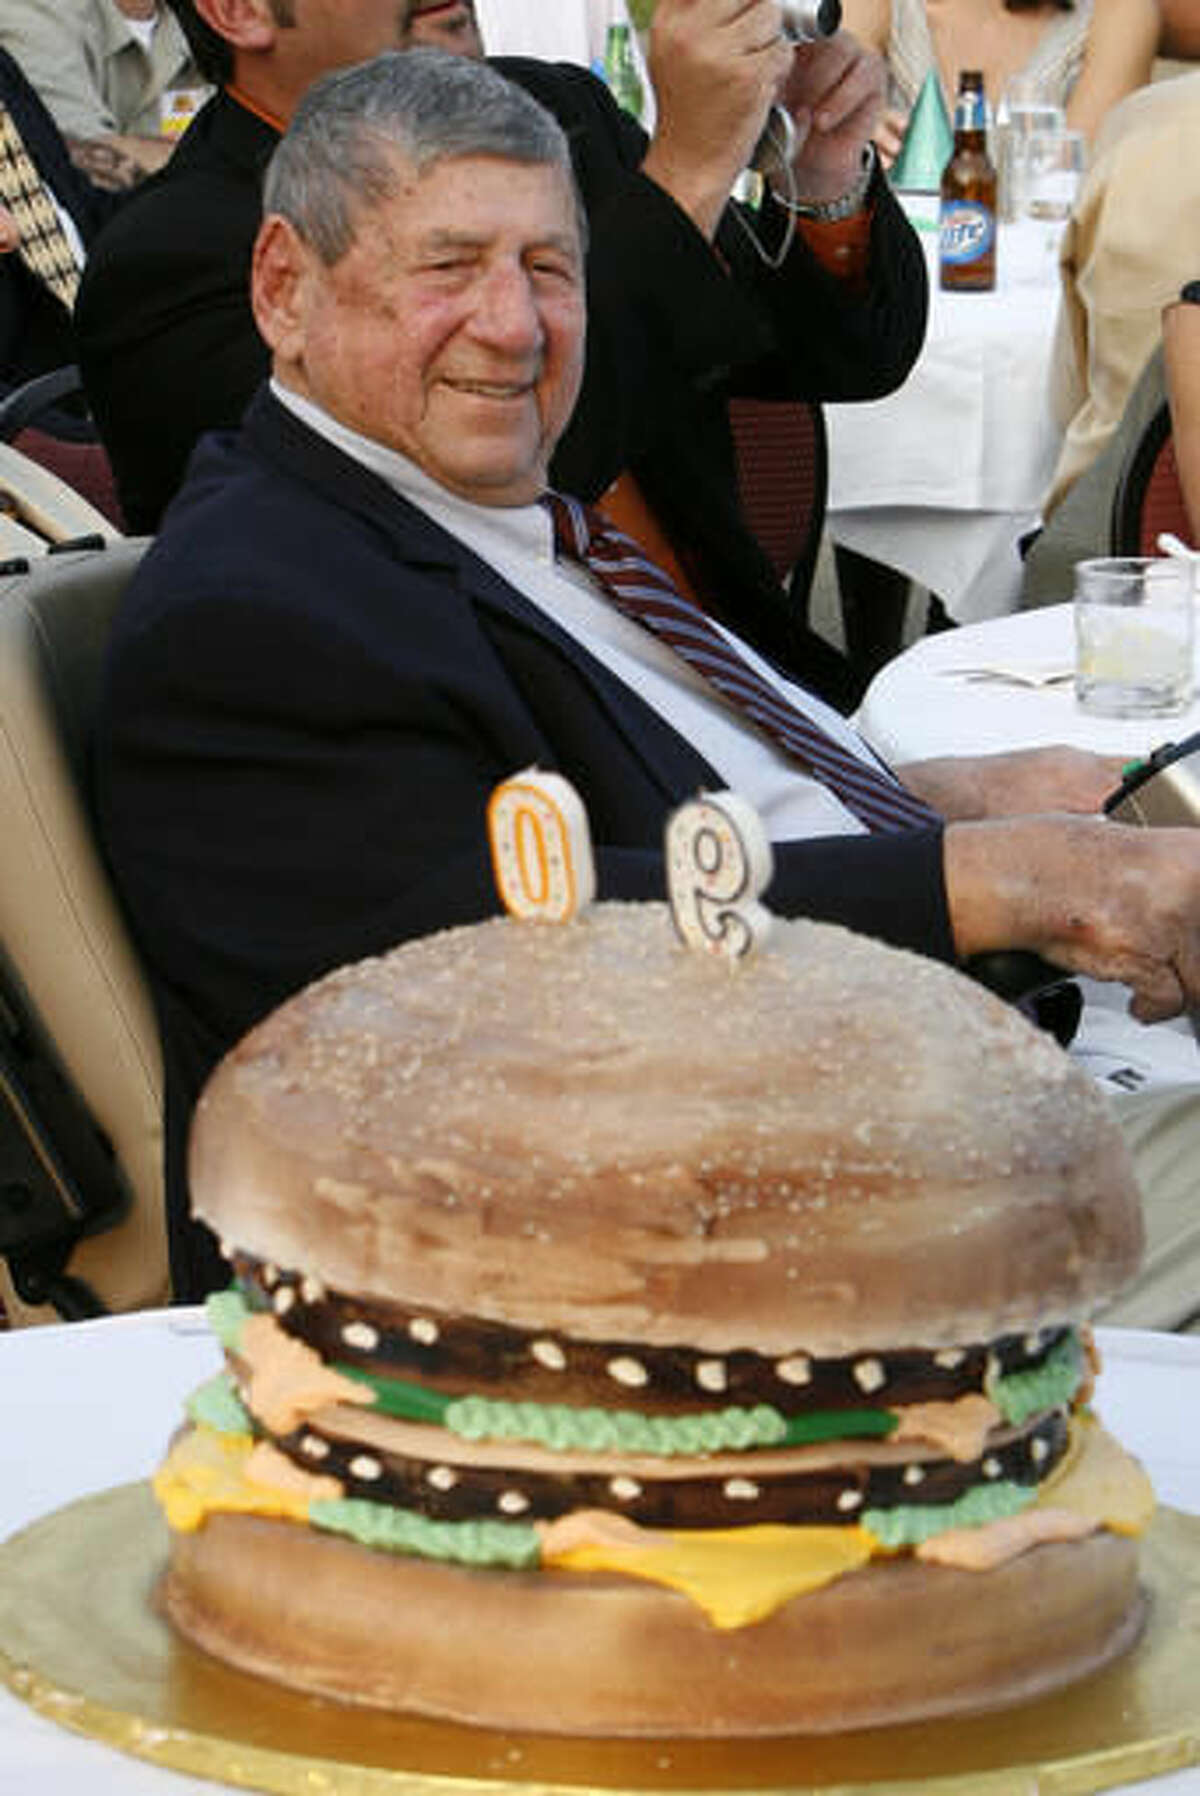 """FILE - In this Aug. 21, 2008, file photo, Big Mac creator Michael """"Jim"""" Delligatti sits behind a Big Mac birthday cake at his 90th birthday party in Canonsburg, Pa. Delligatti, the Pittsburgh-area McDonald's franchisee who created the Big Mac in 1967, has died. He was 98. (AP Photo/Gene J. Puskar, File)"""